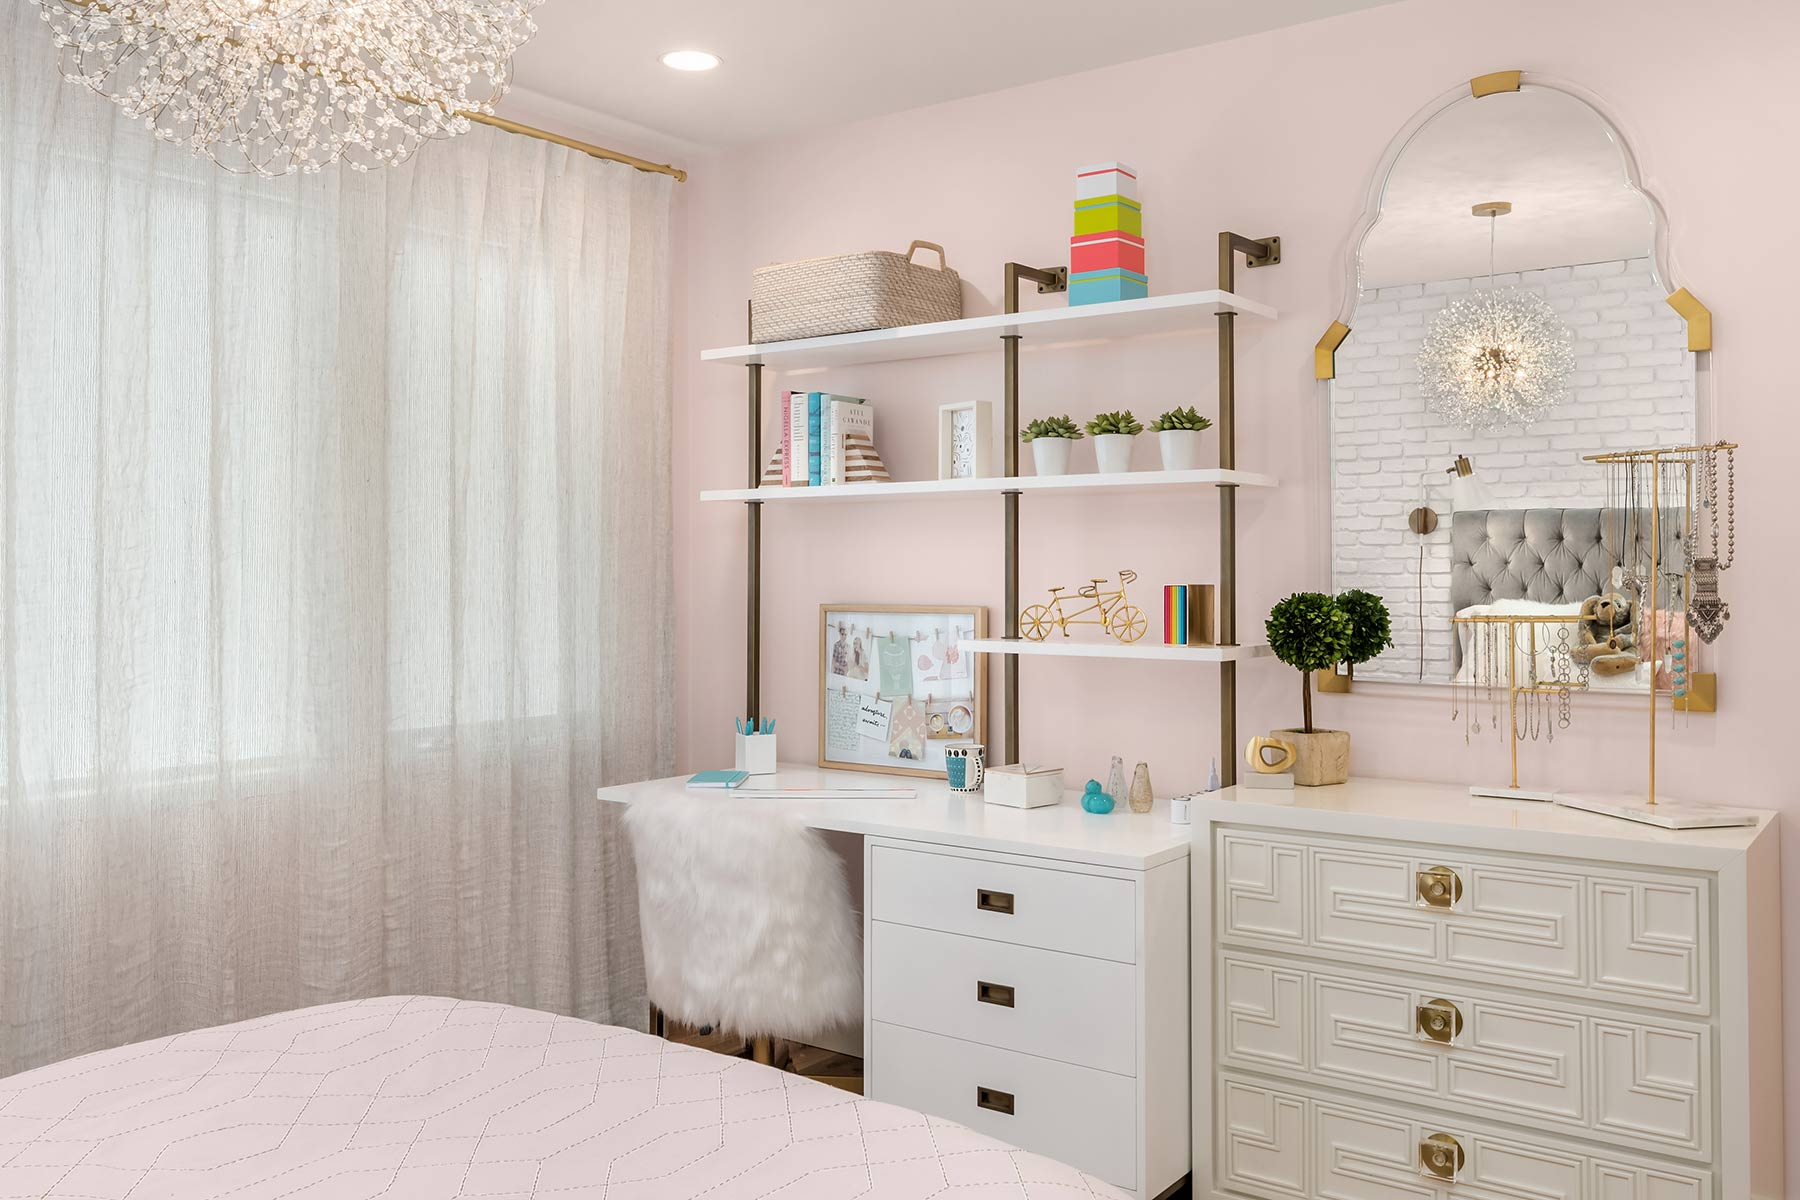 Provanti Designs 'Pretty in Pink' teen bedroom design - featured on Houzz